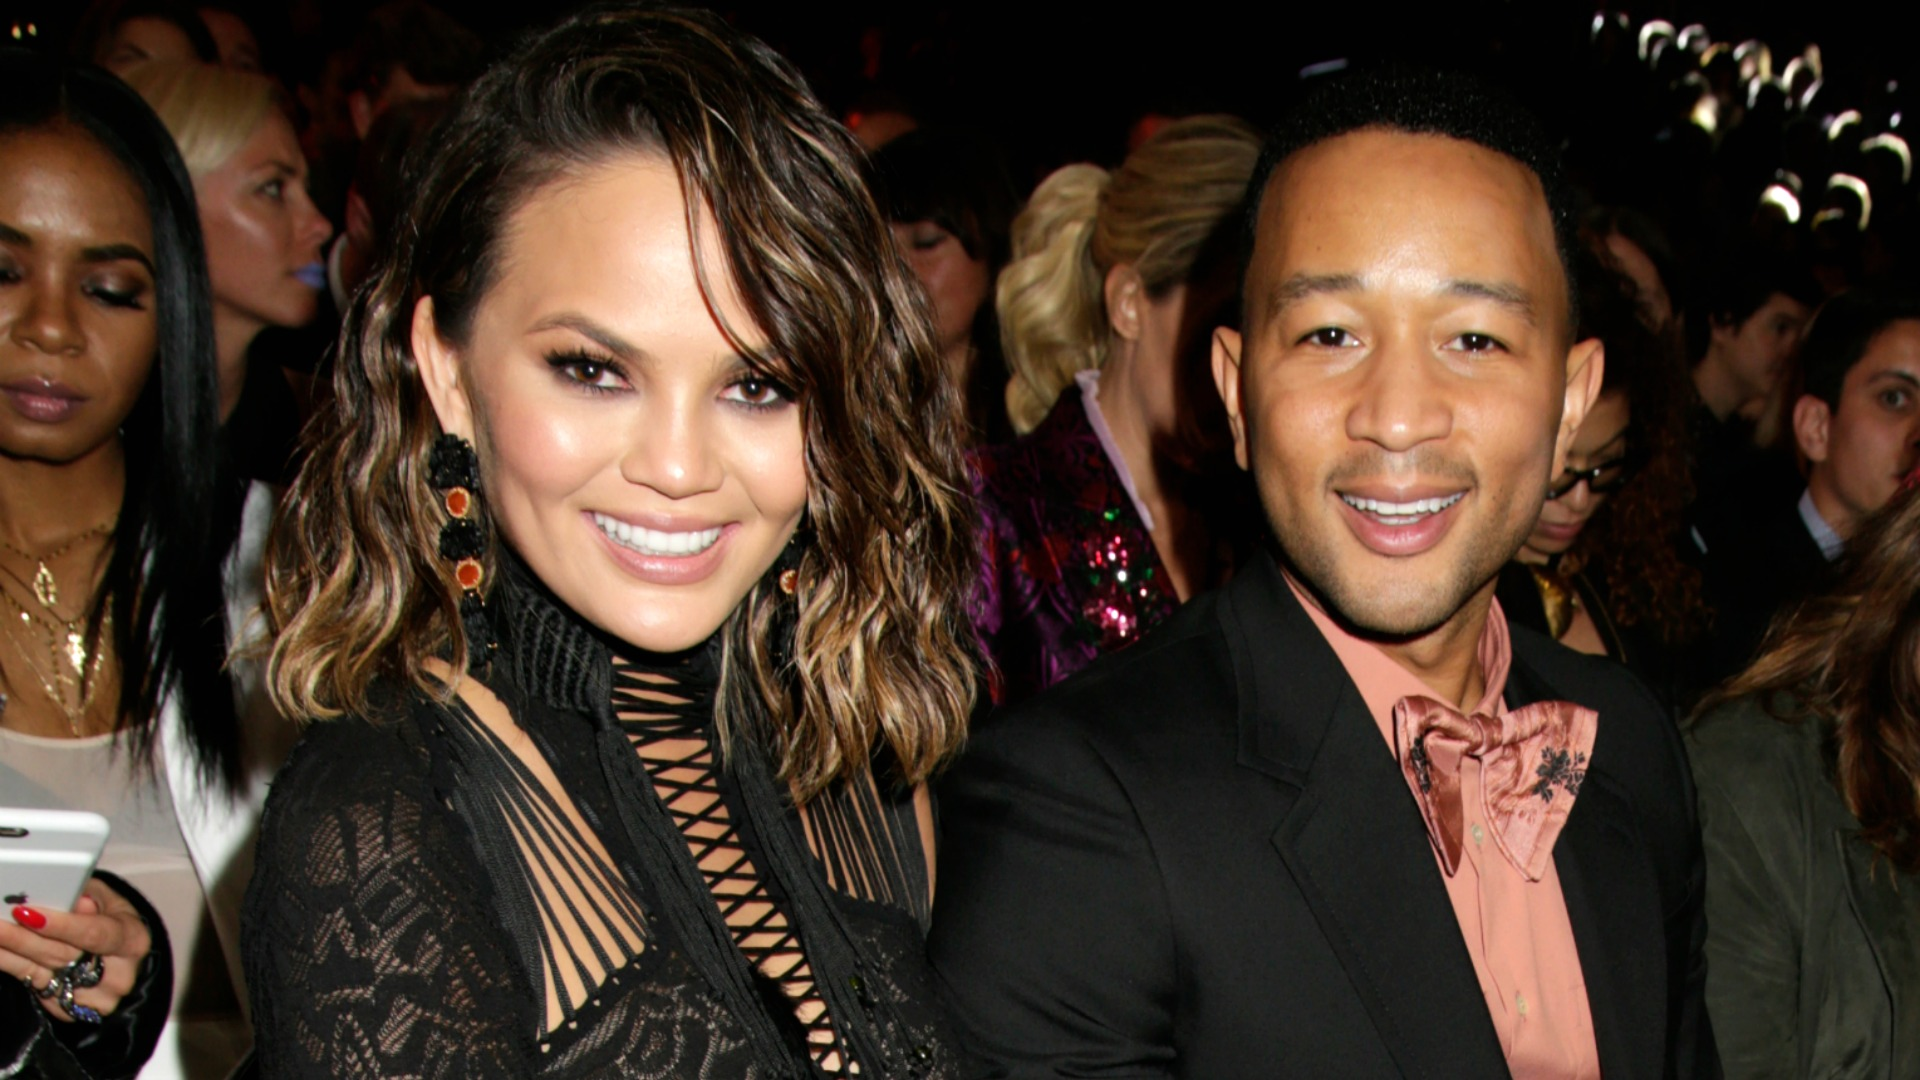 Chrissy Teigen and John Legend sure make one handsome couple.